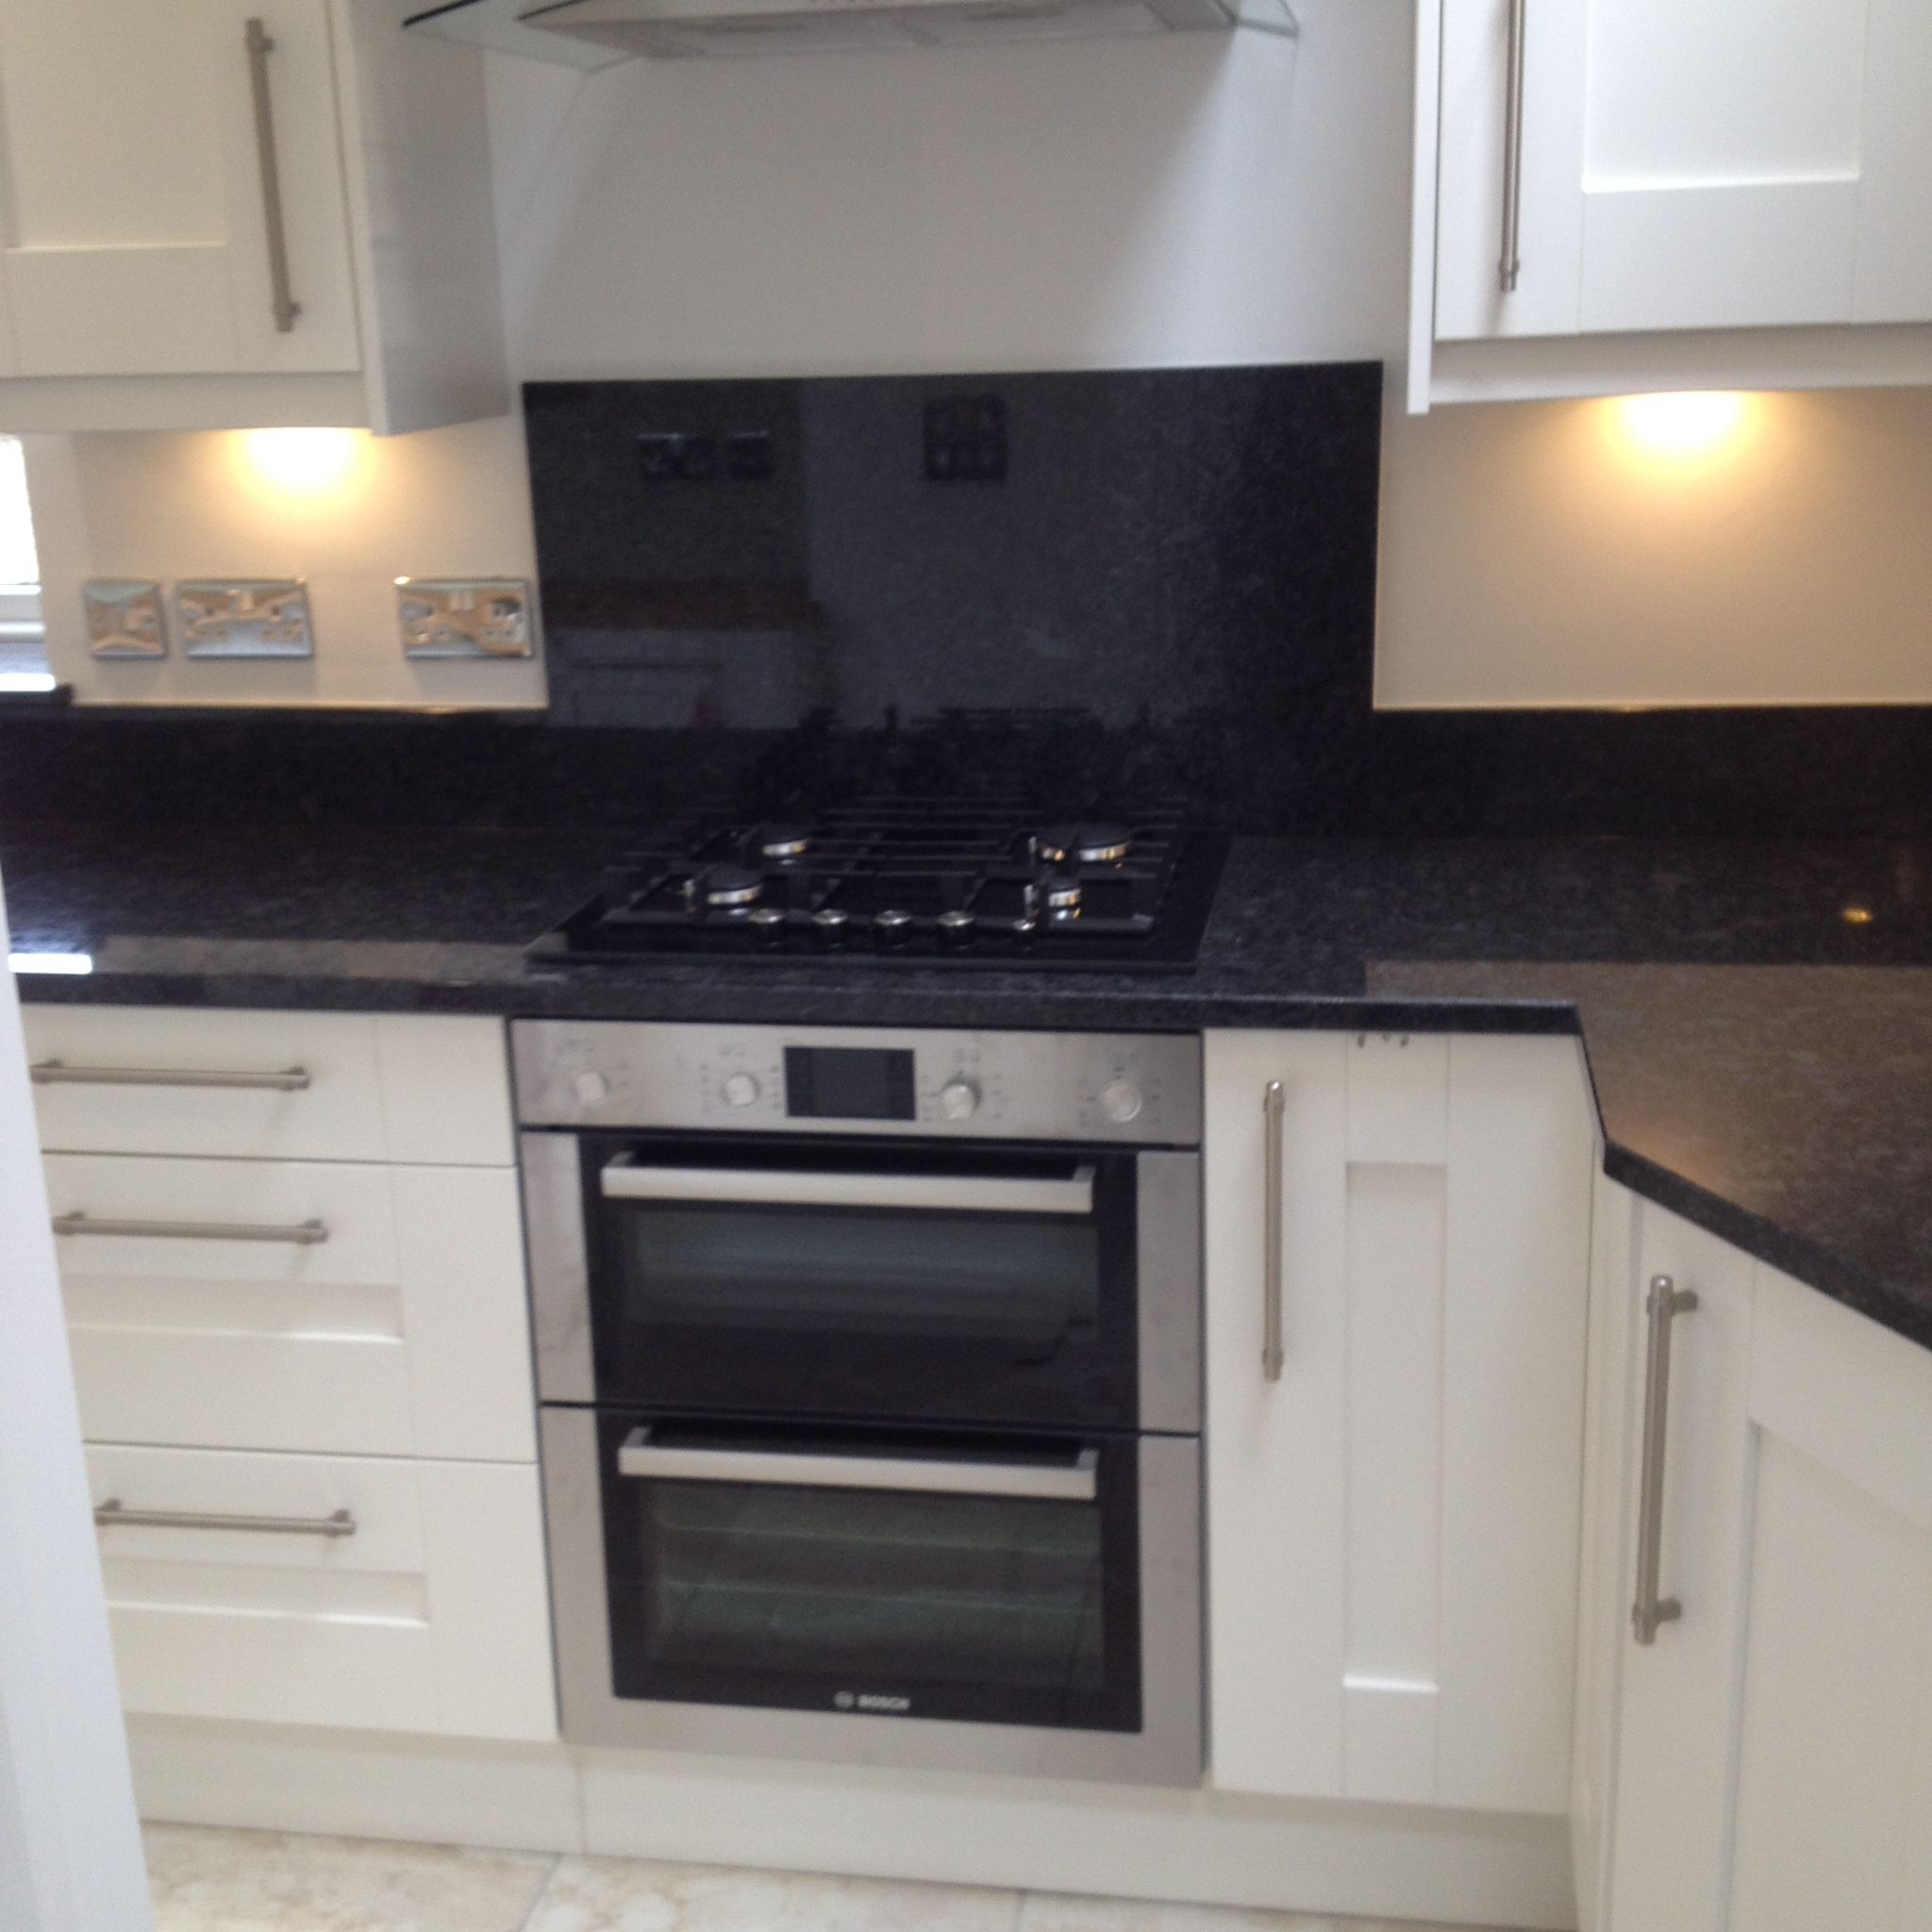 Kuche Single Stove Induction Cooktop Bosch Built Under Double Oven With Gas On Glass Hob